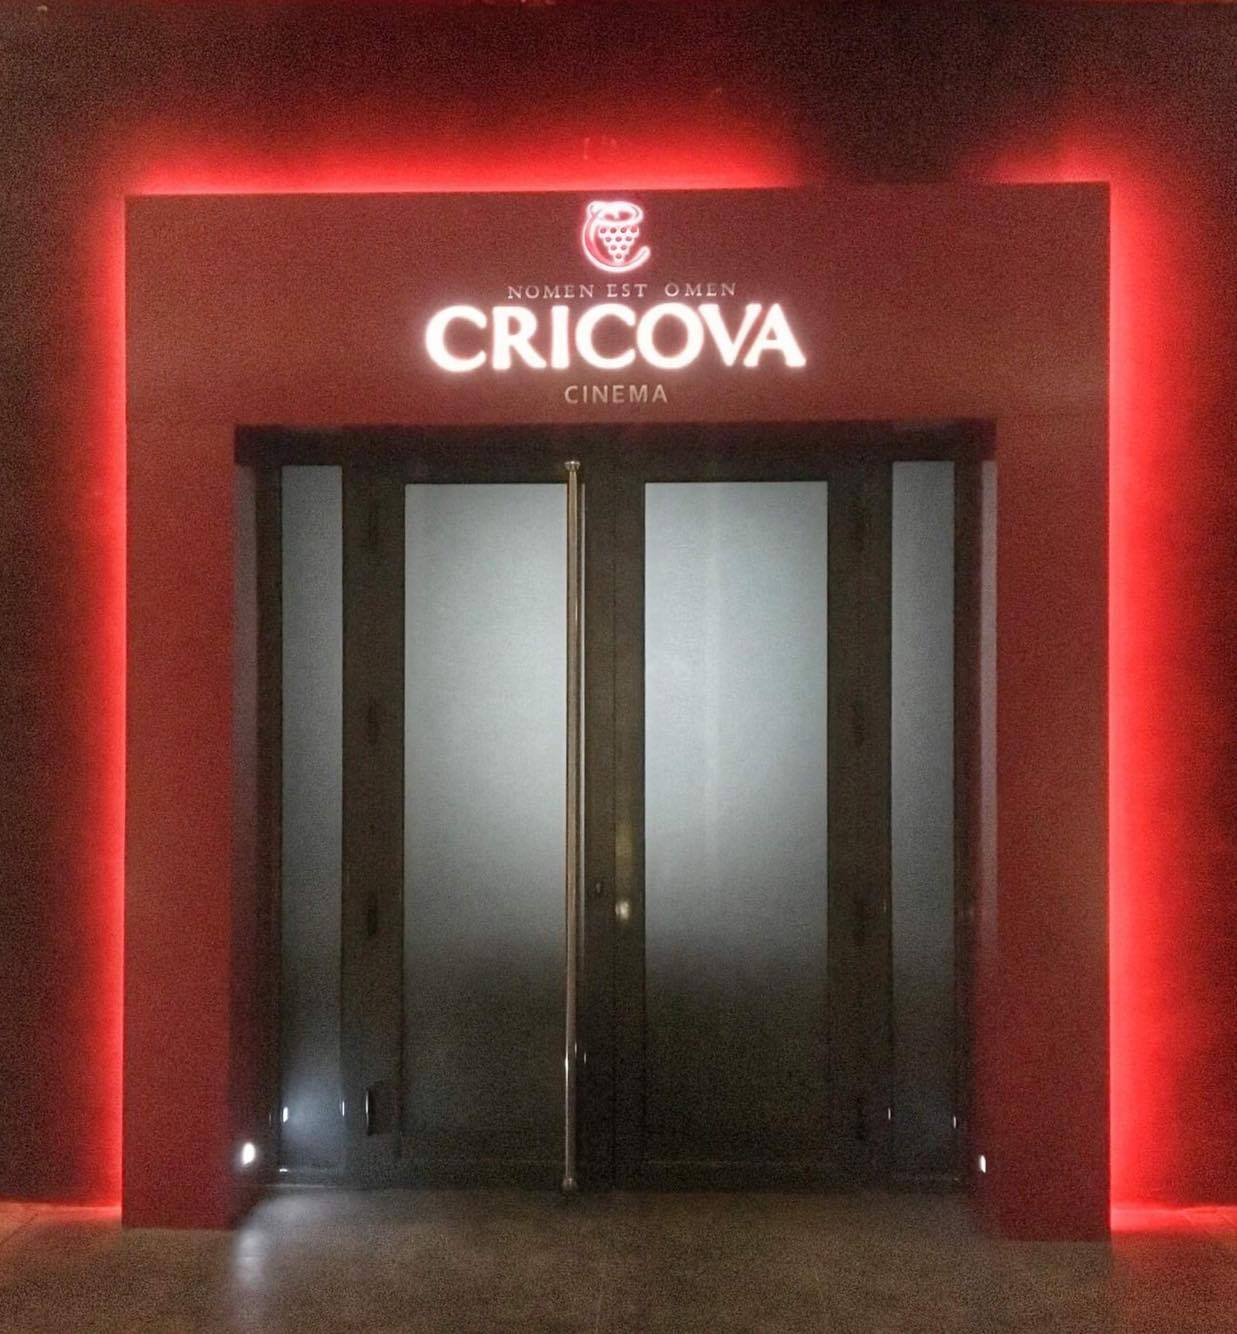 Cricova Winery is the second largest wine cellar in the world, with some 75 miles (120 kilometers) of underground wine storage.